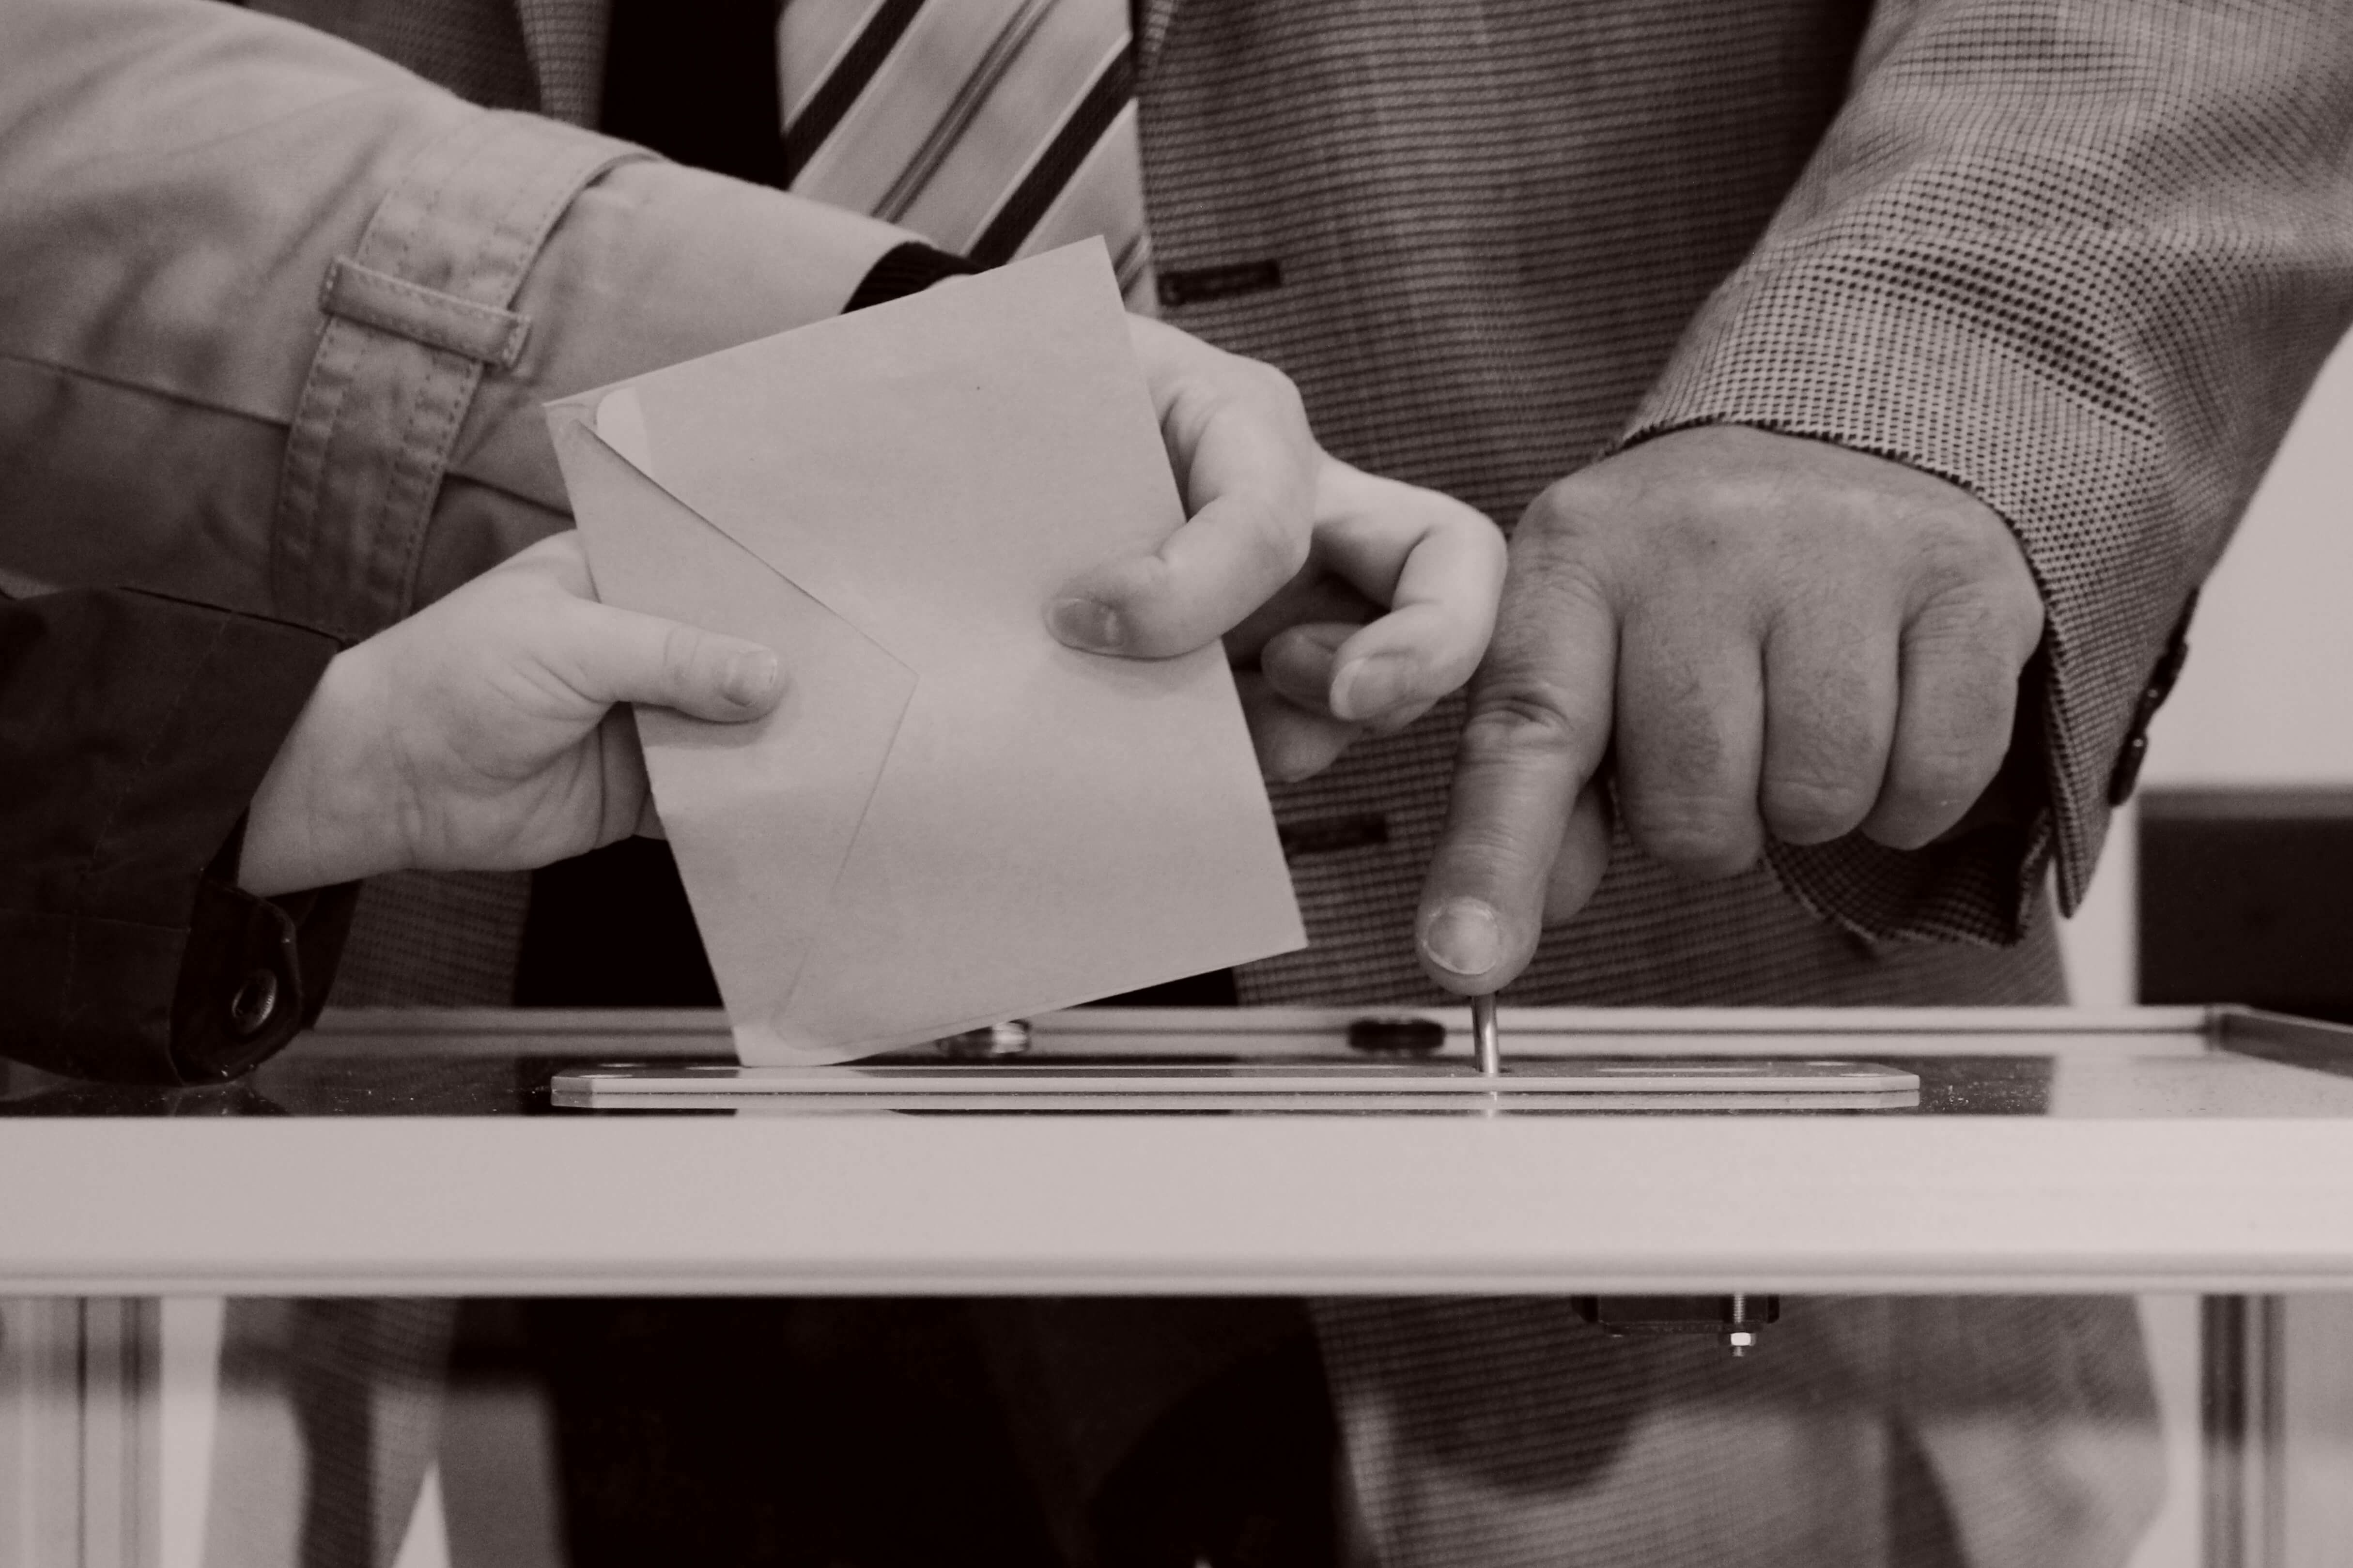 How to Build an Electronic Realtime Poll in 5 Steps